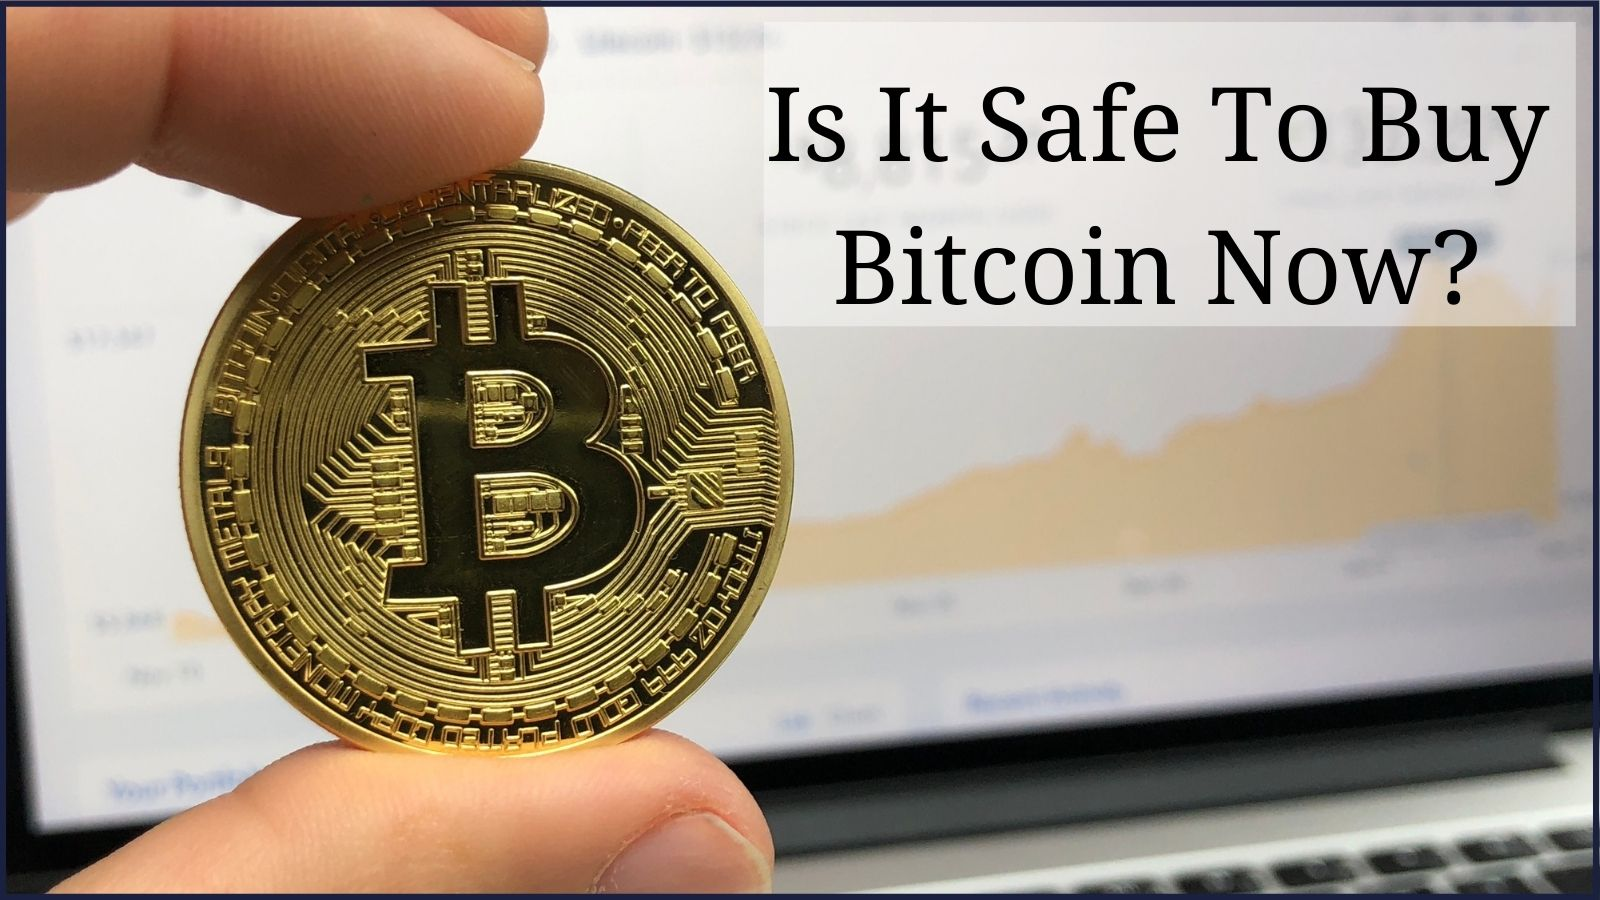 Is it safe to buy Bitcoin Now